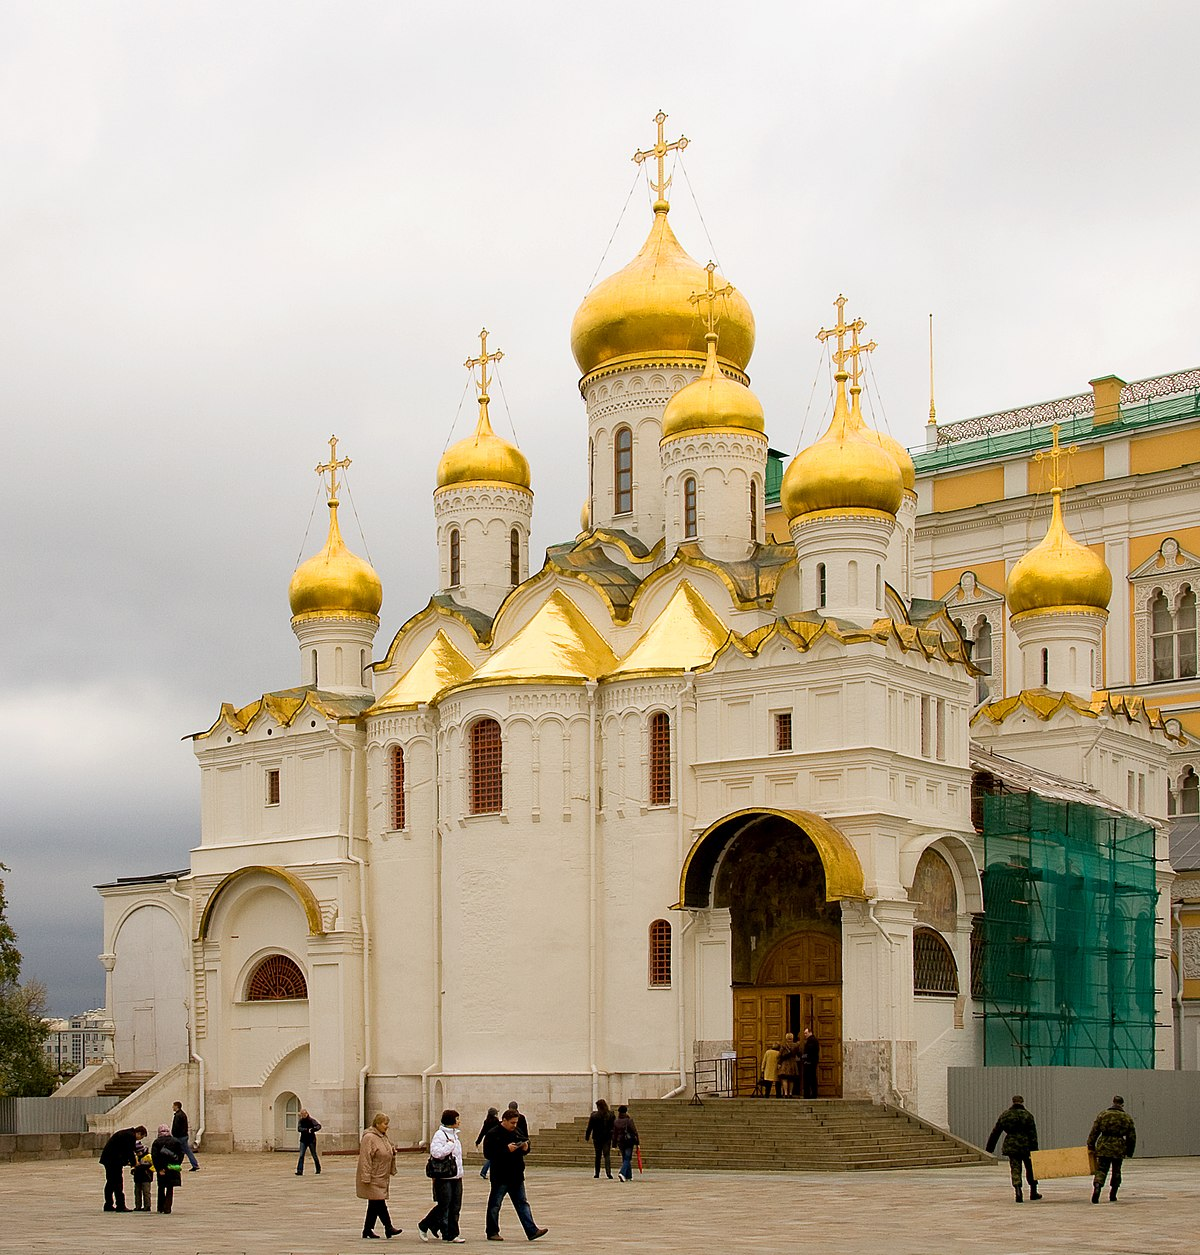 Archangel Cathedral of the Moscow Kremlin: description, architecture 86